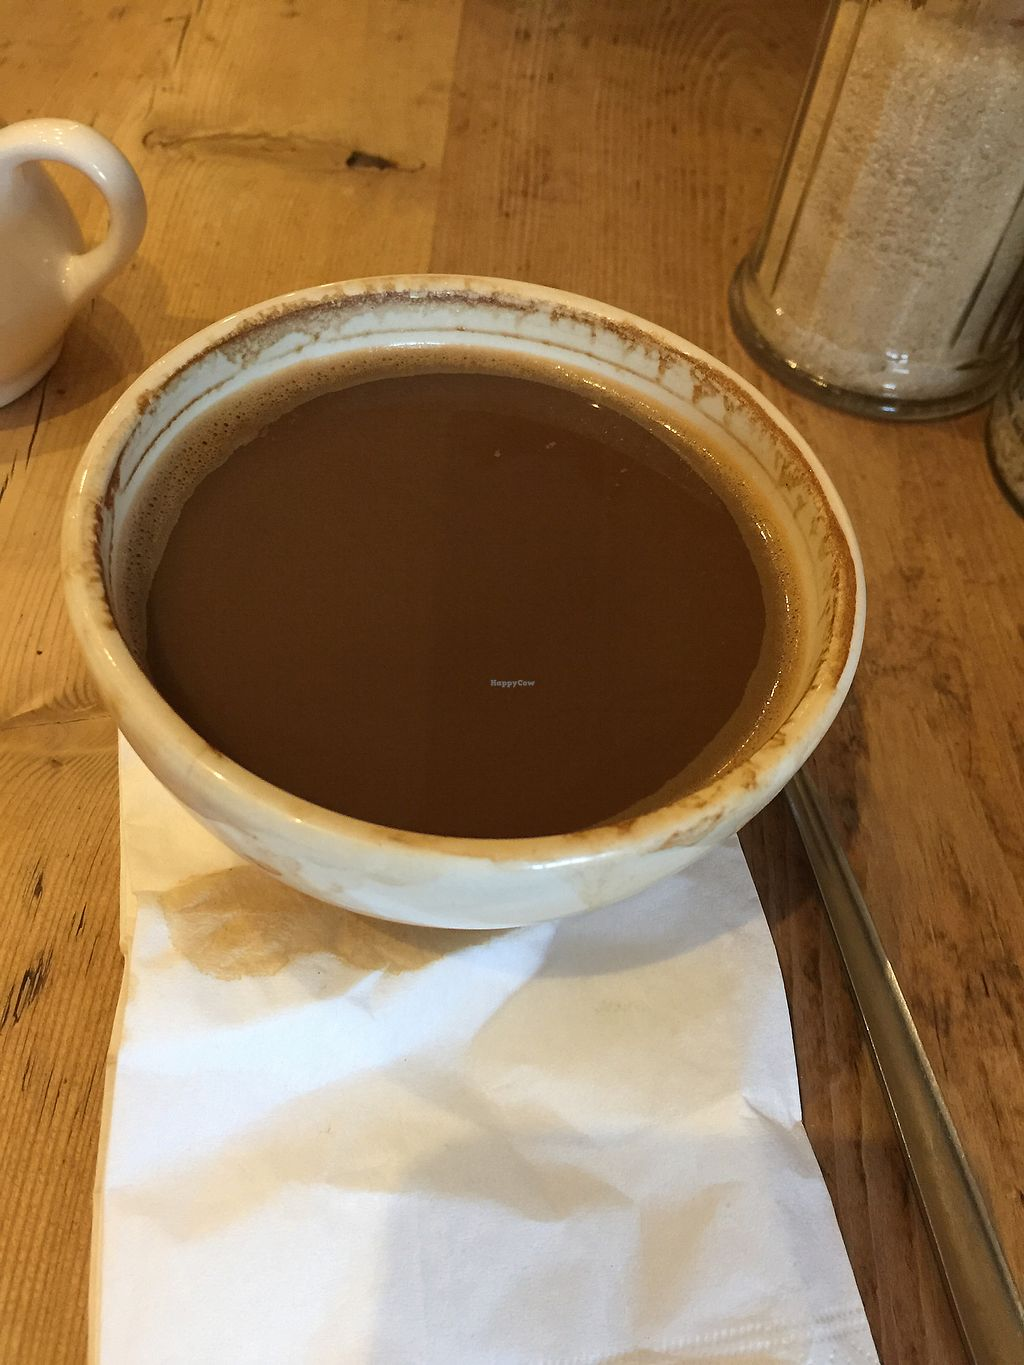 "Photo of Le Pain Quotidien - Westfield  by <a href=""/members/profile/AnuradhaMathur"">AnuradhaMathur</a> <br/>Shallow bowls spilling coffee no room for milk <br/> April 1, 2018  - <a href='/contact/abuse/image/84231/379374'>Report</a>"